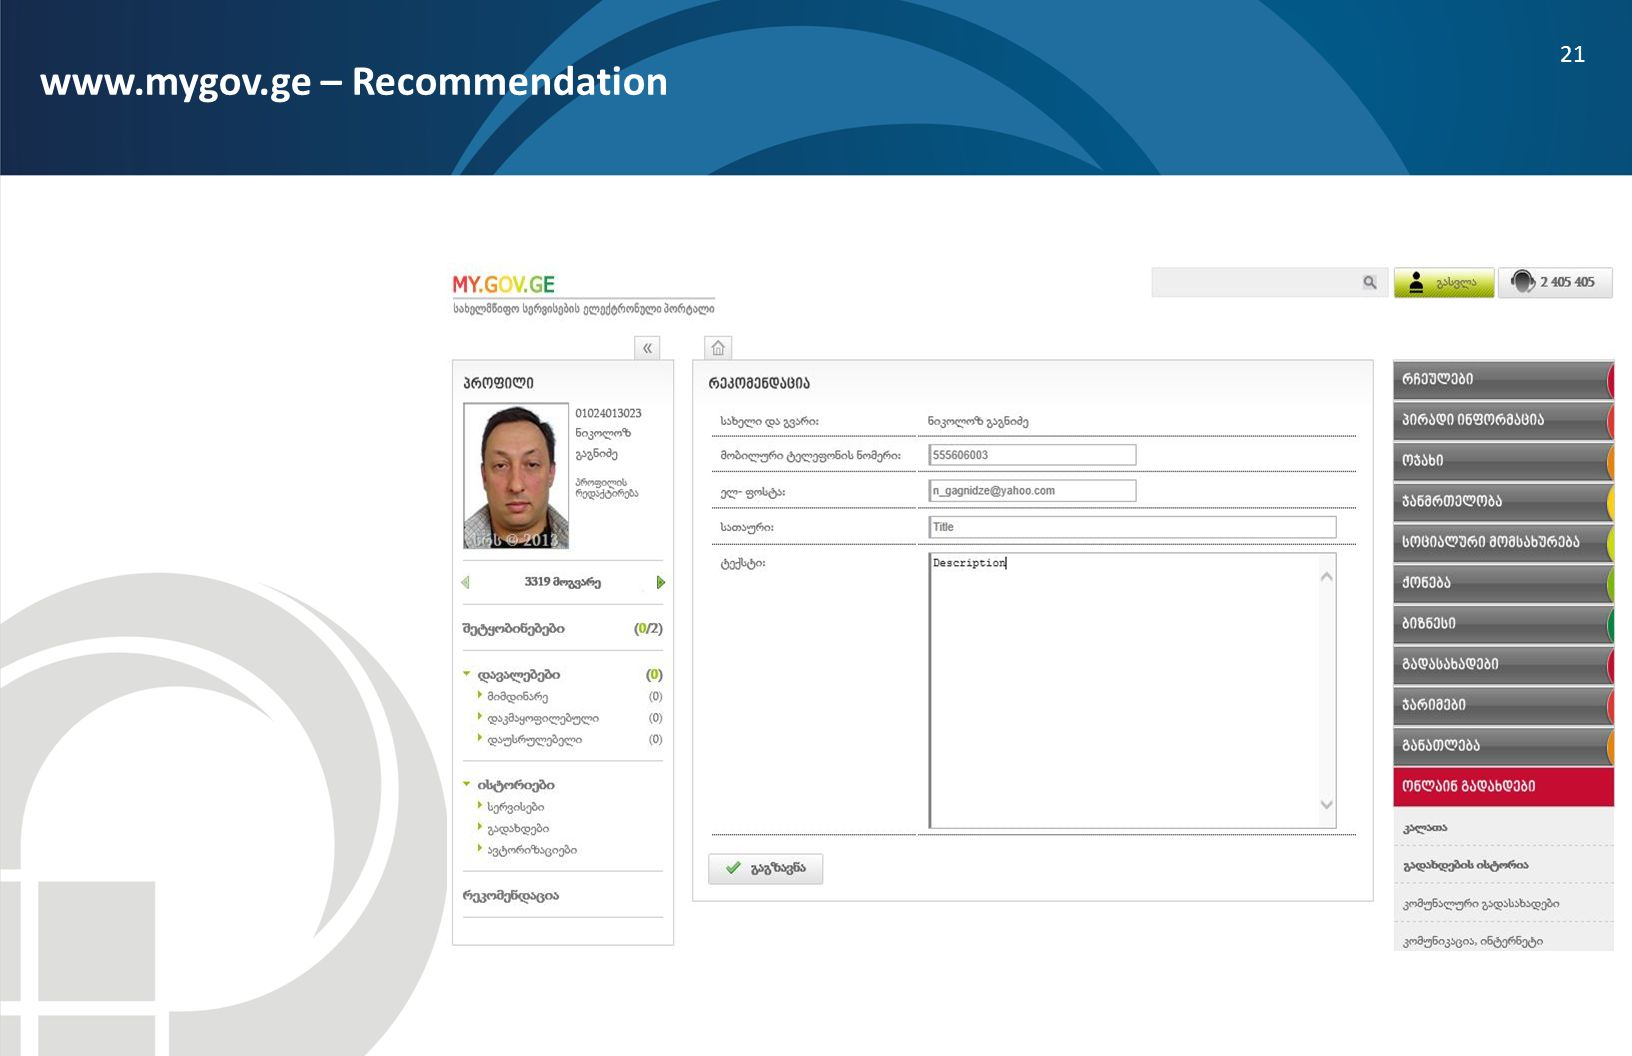 www.mygov.ge – Recommendation